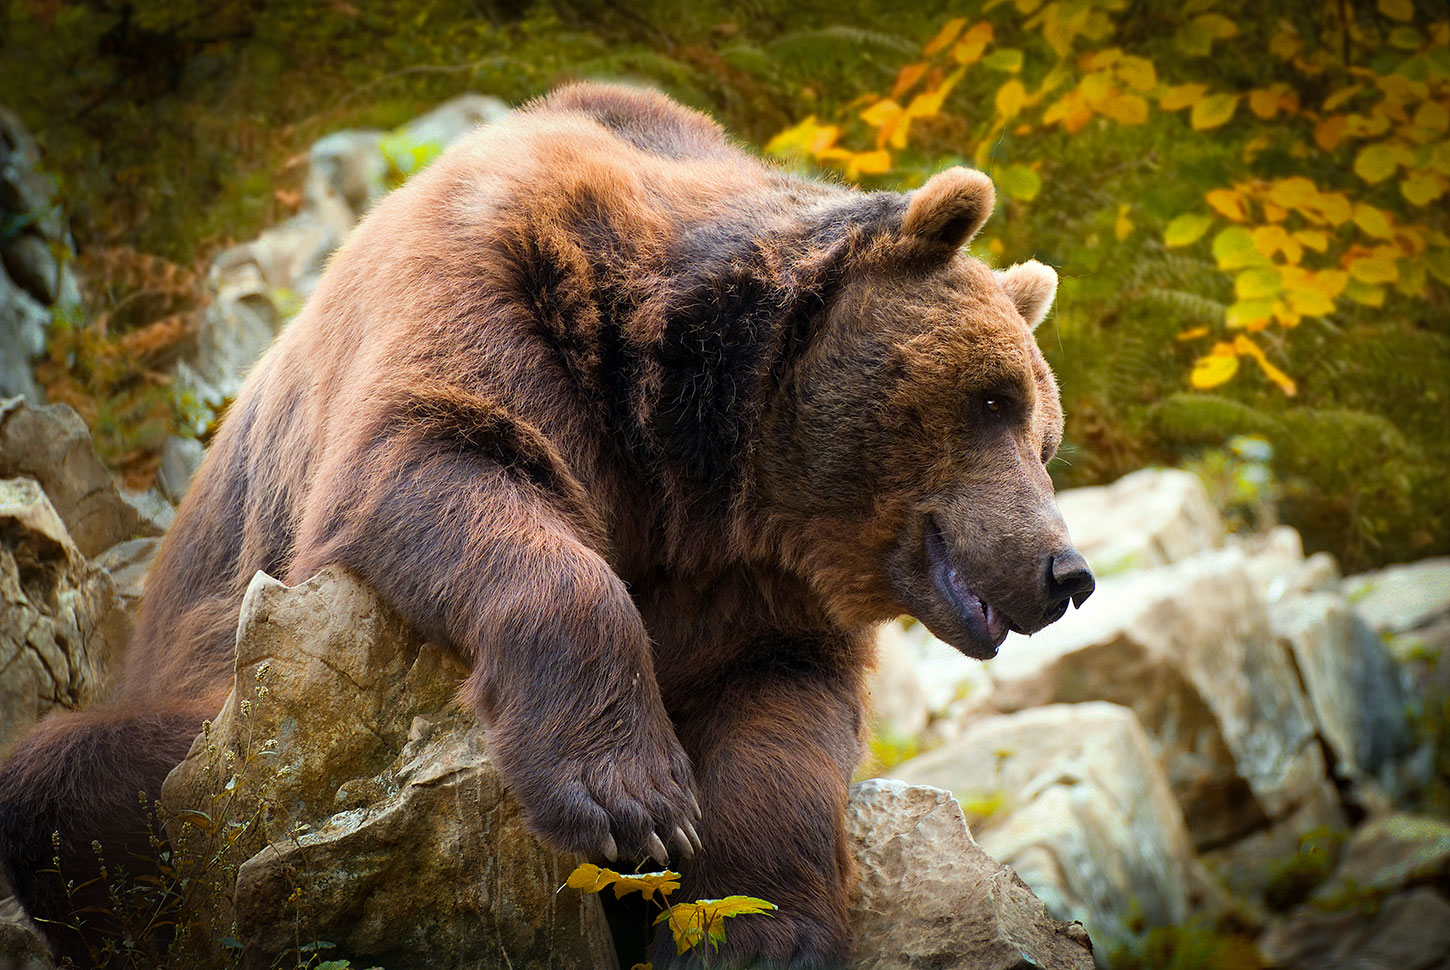 Cantabrian brown bear in autumn foliage